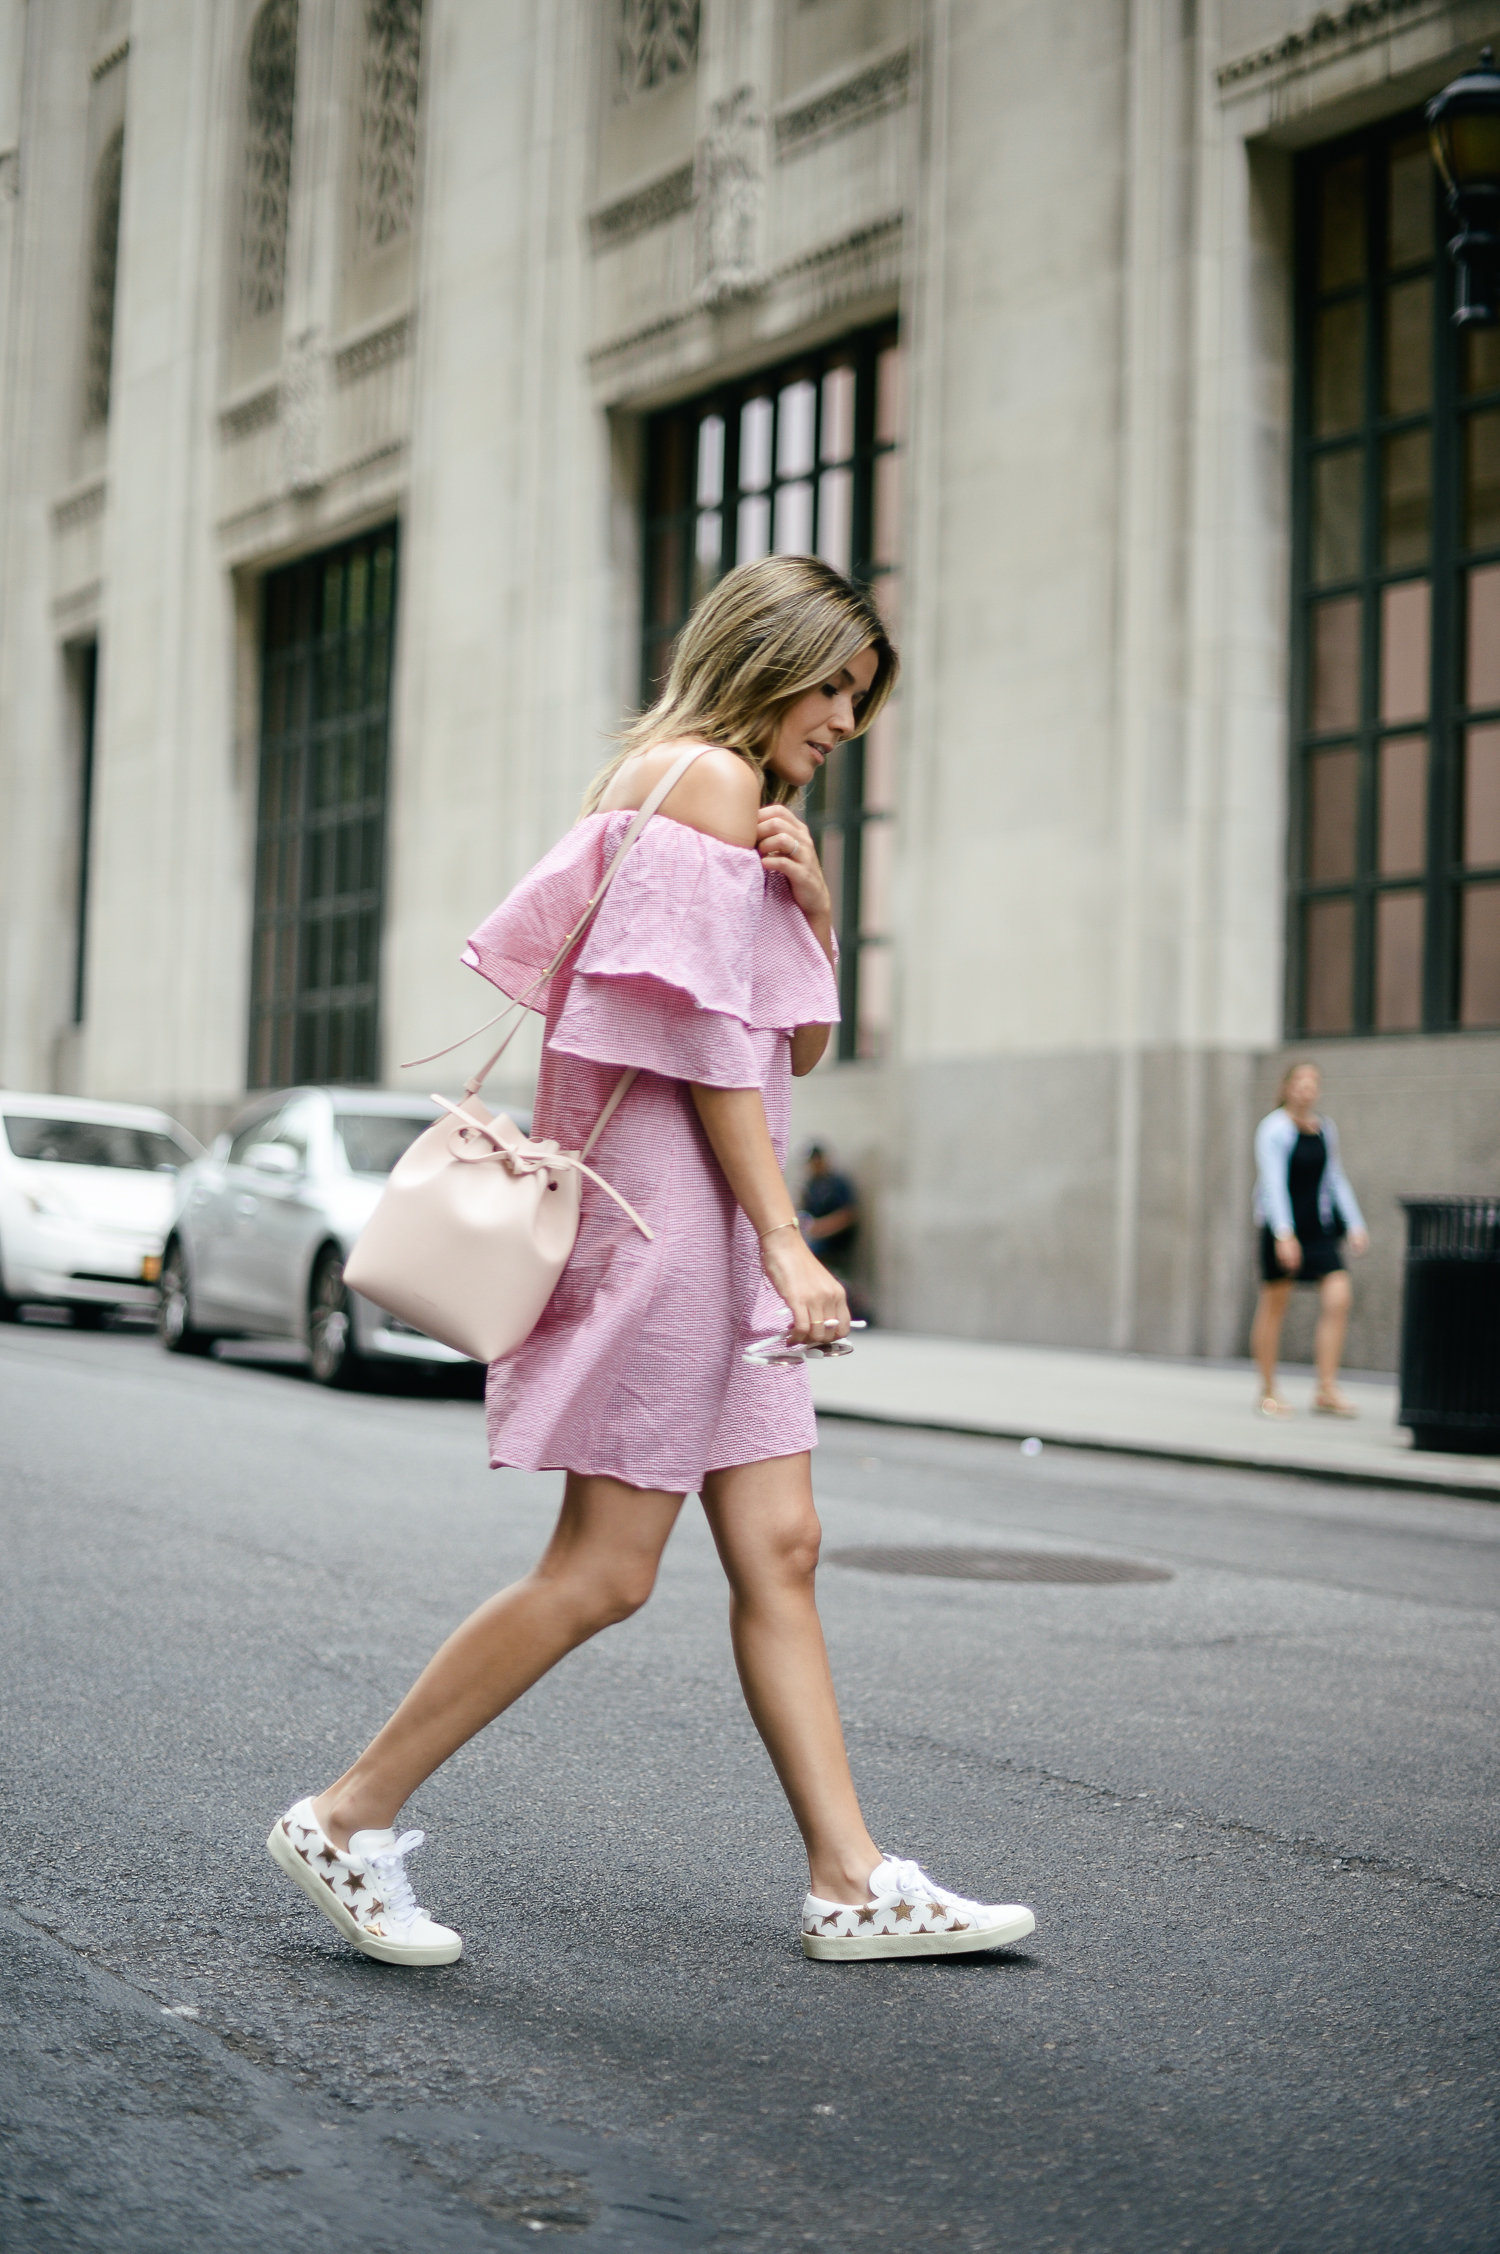 Sara Azani of Style MBA wears a pink ruffle sleeve dress and Saint Laurent leather sneakers as part of an ensemble for her top 10 picks of the Net-A-Porter sale.